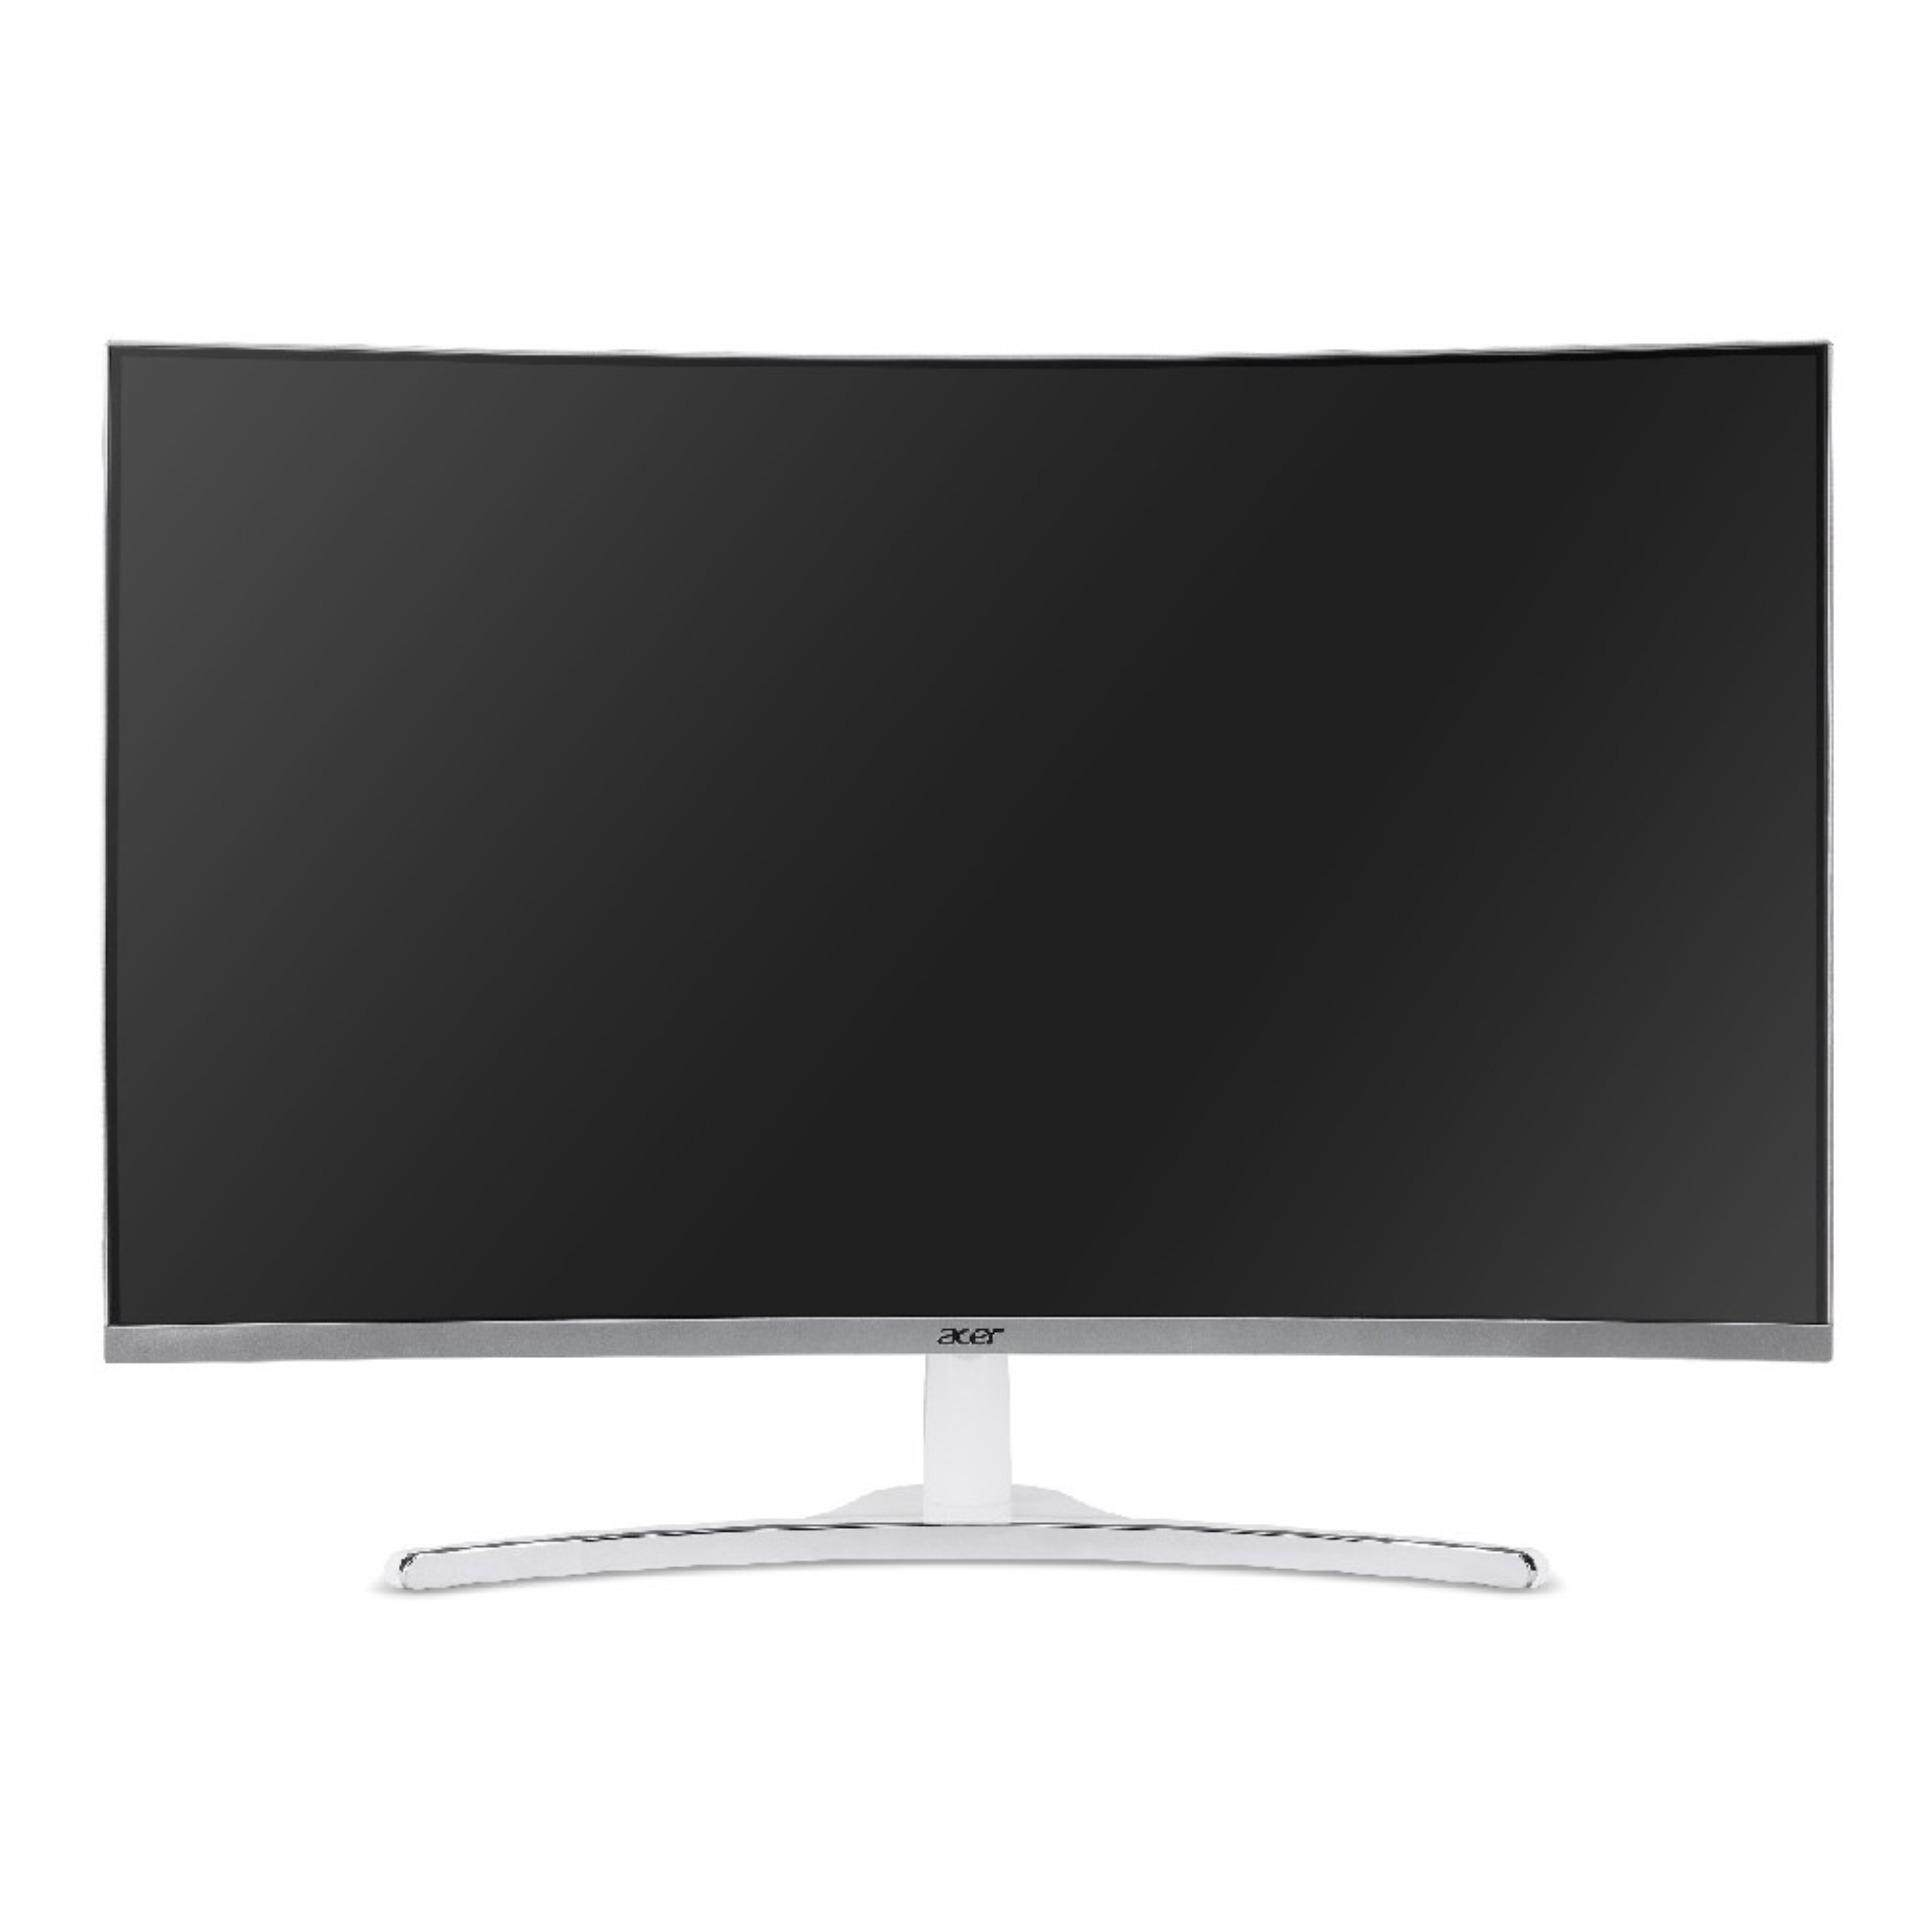 "ACER Curve LED 27"" Monitor ED273wmidx (VA Panel, VGA, DVI (w/HDCP), HDMI, Audio out)"